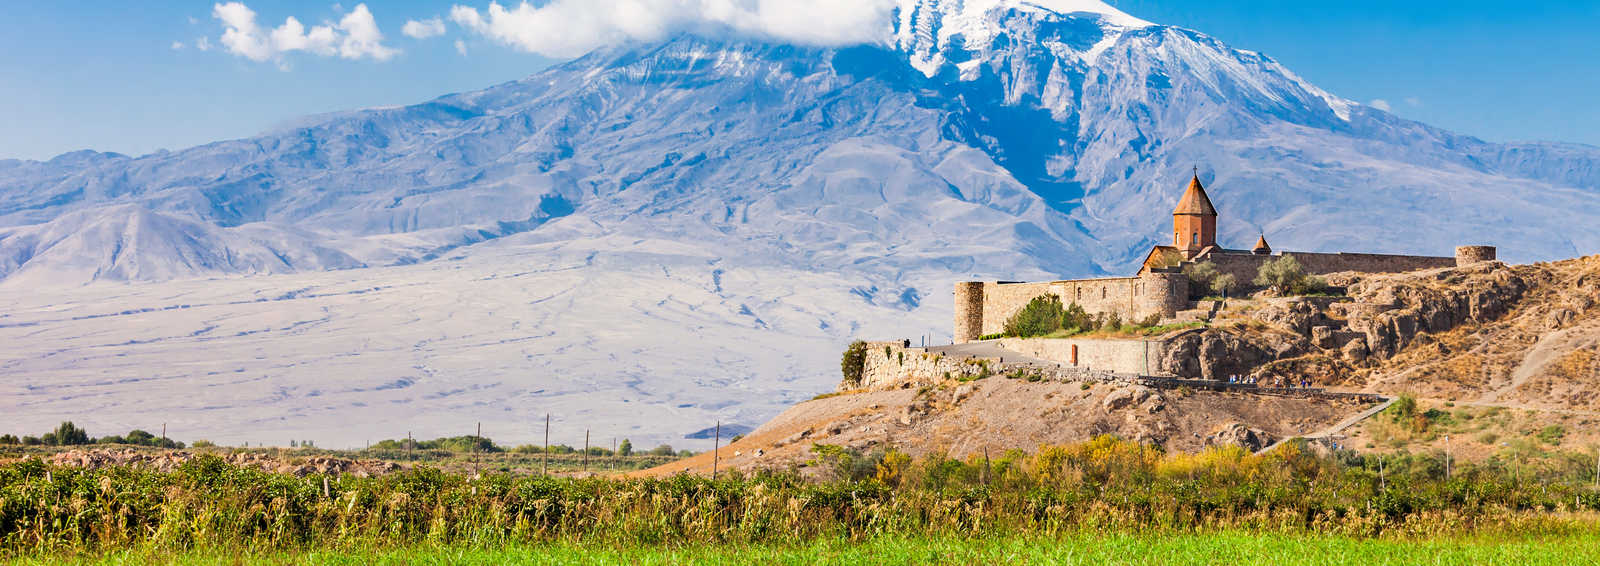 Khor Virap with Mount Ararat in background, Armenia